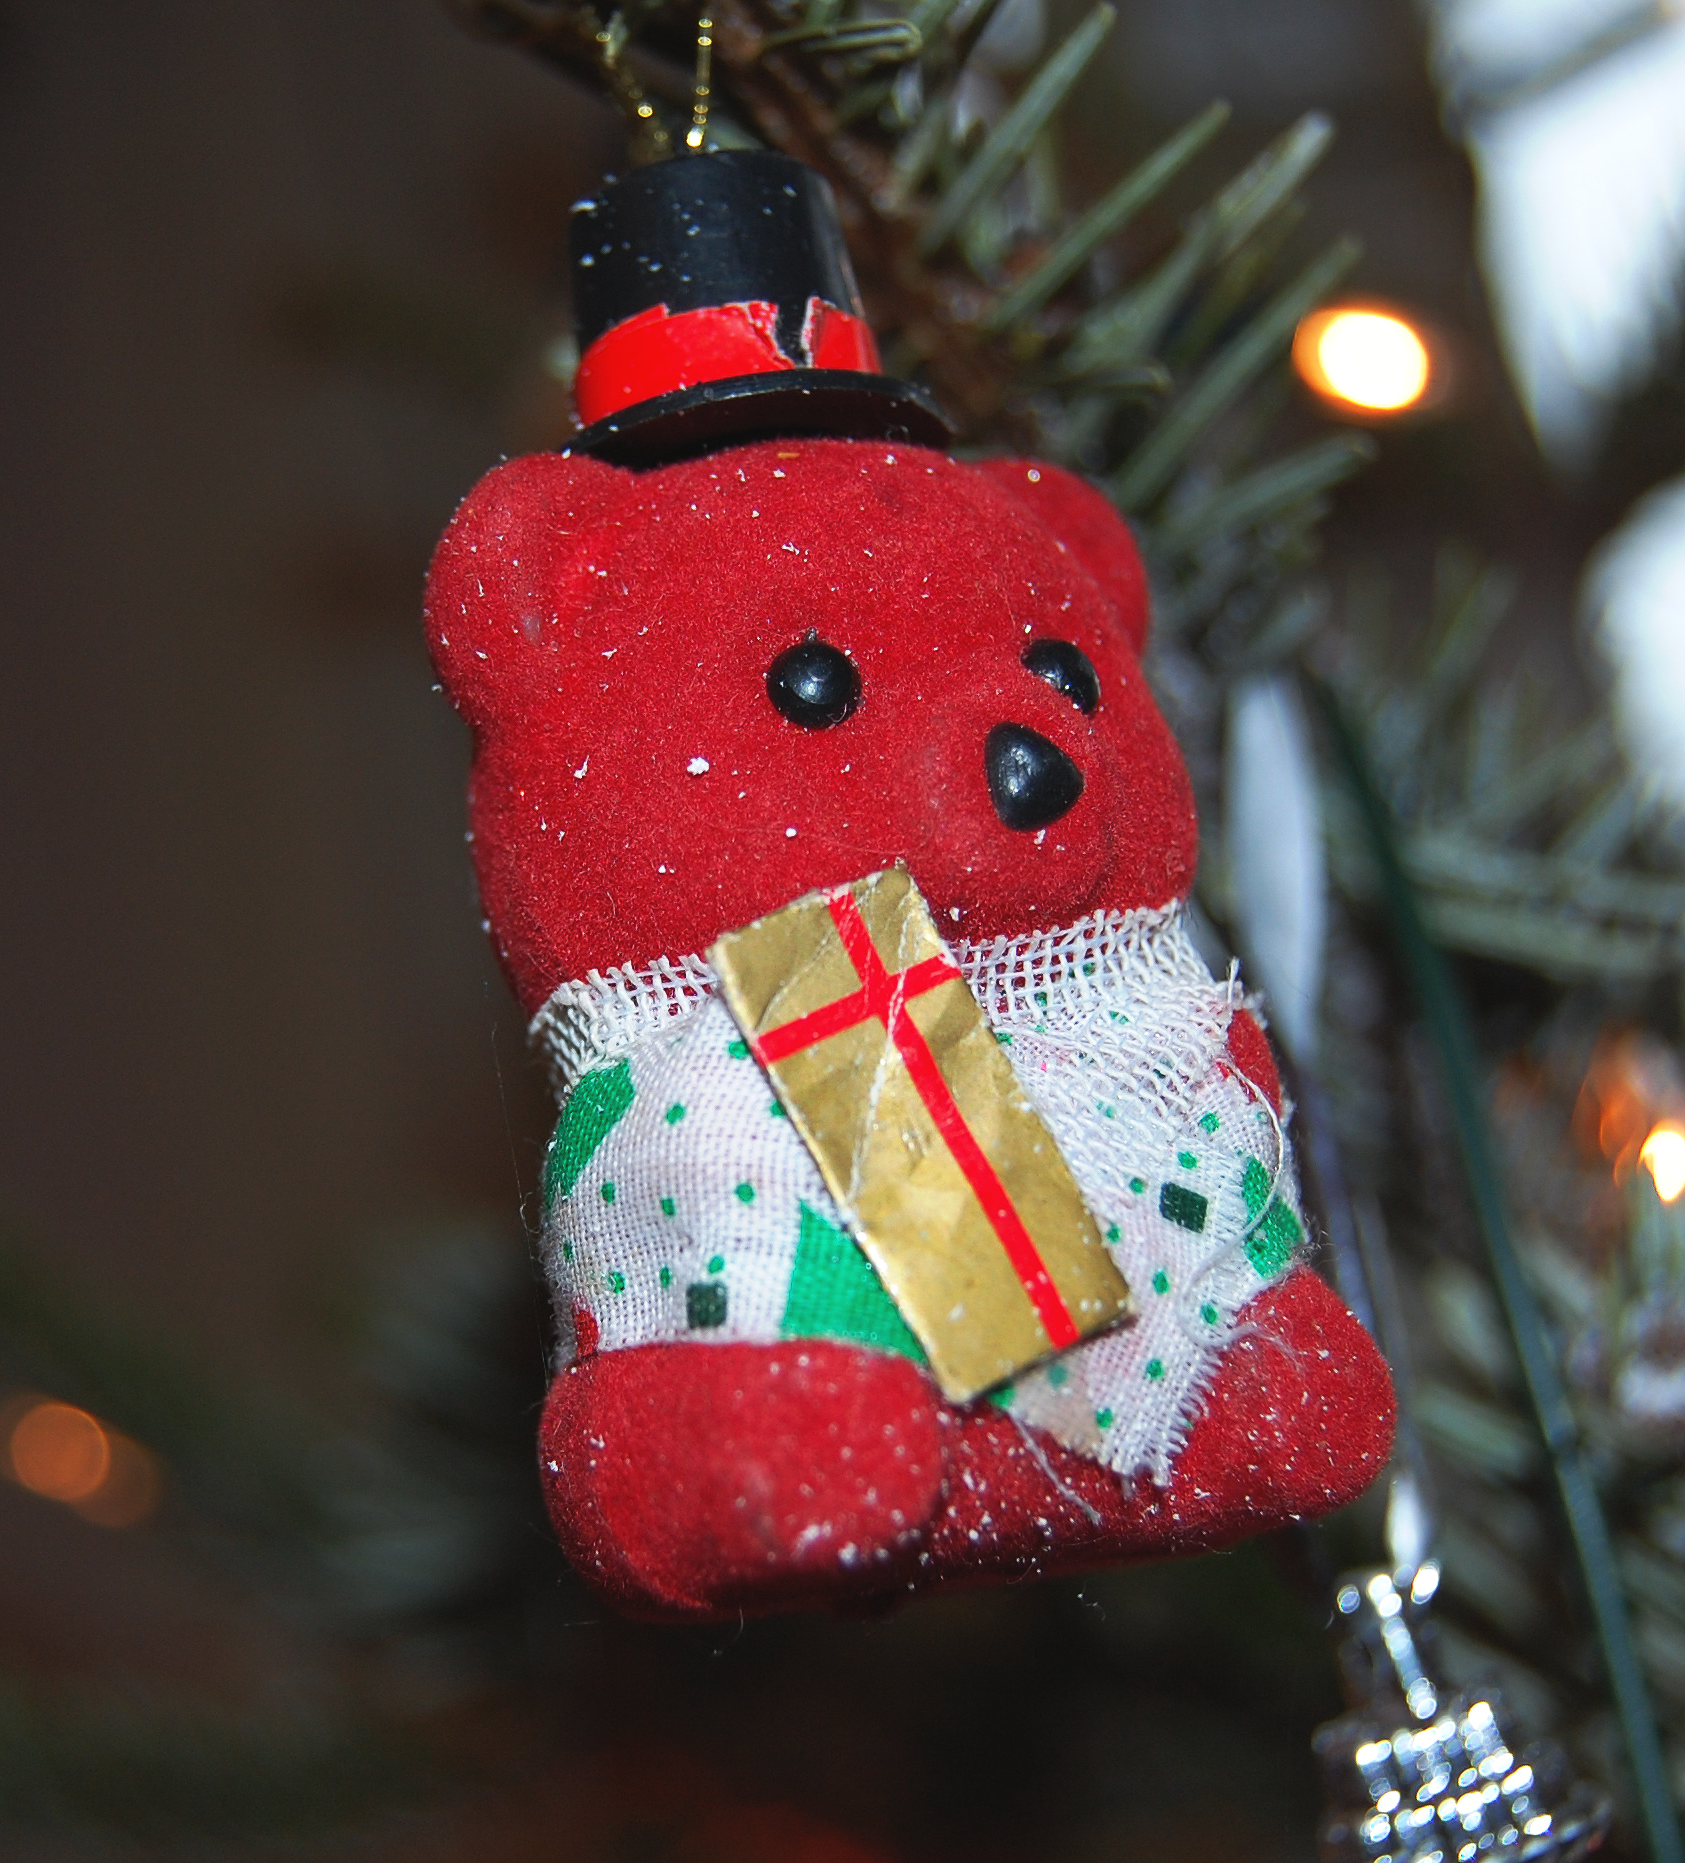 filechristmas tree bear decorationpng - Bear Christmas Decorations